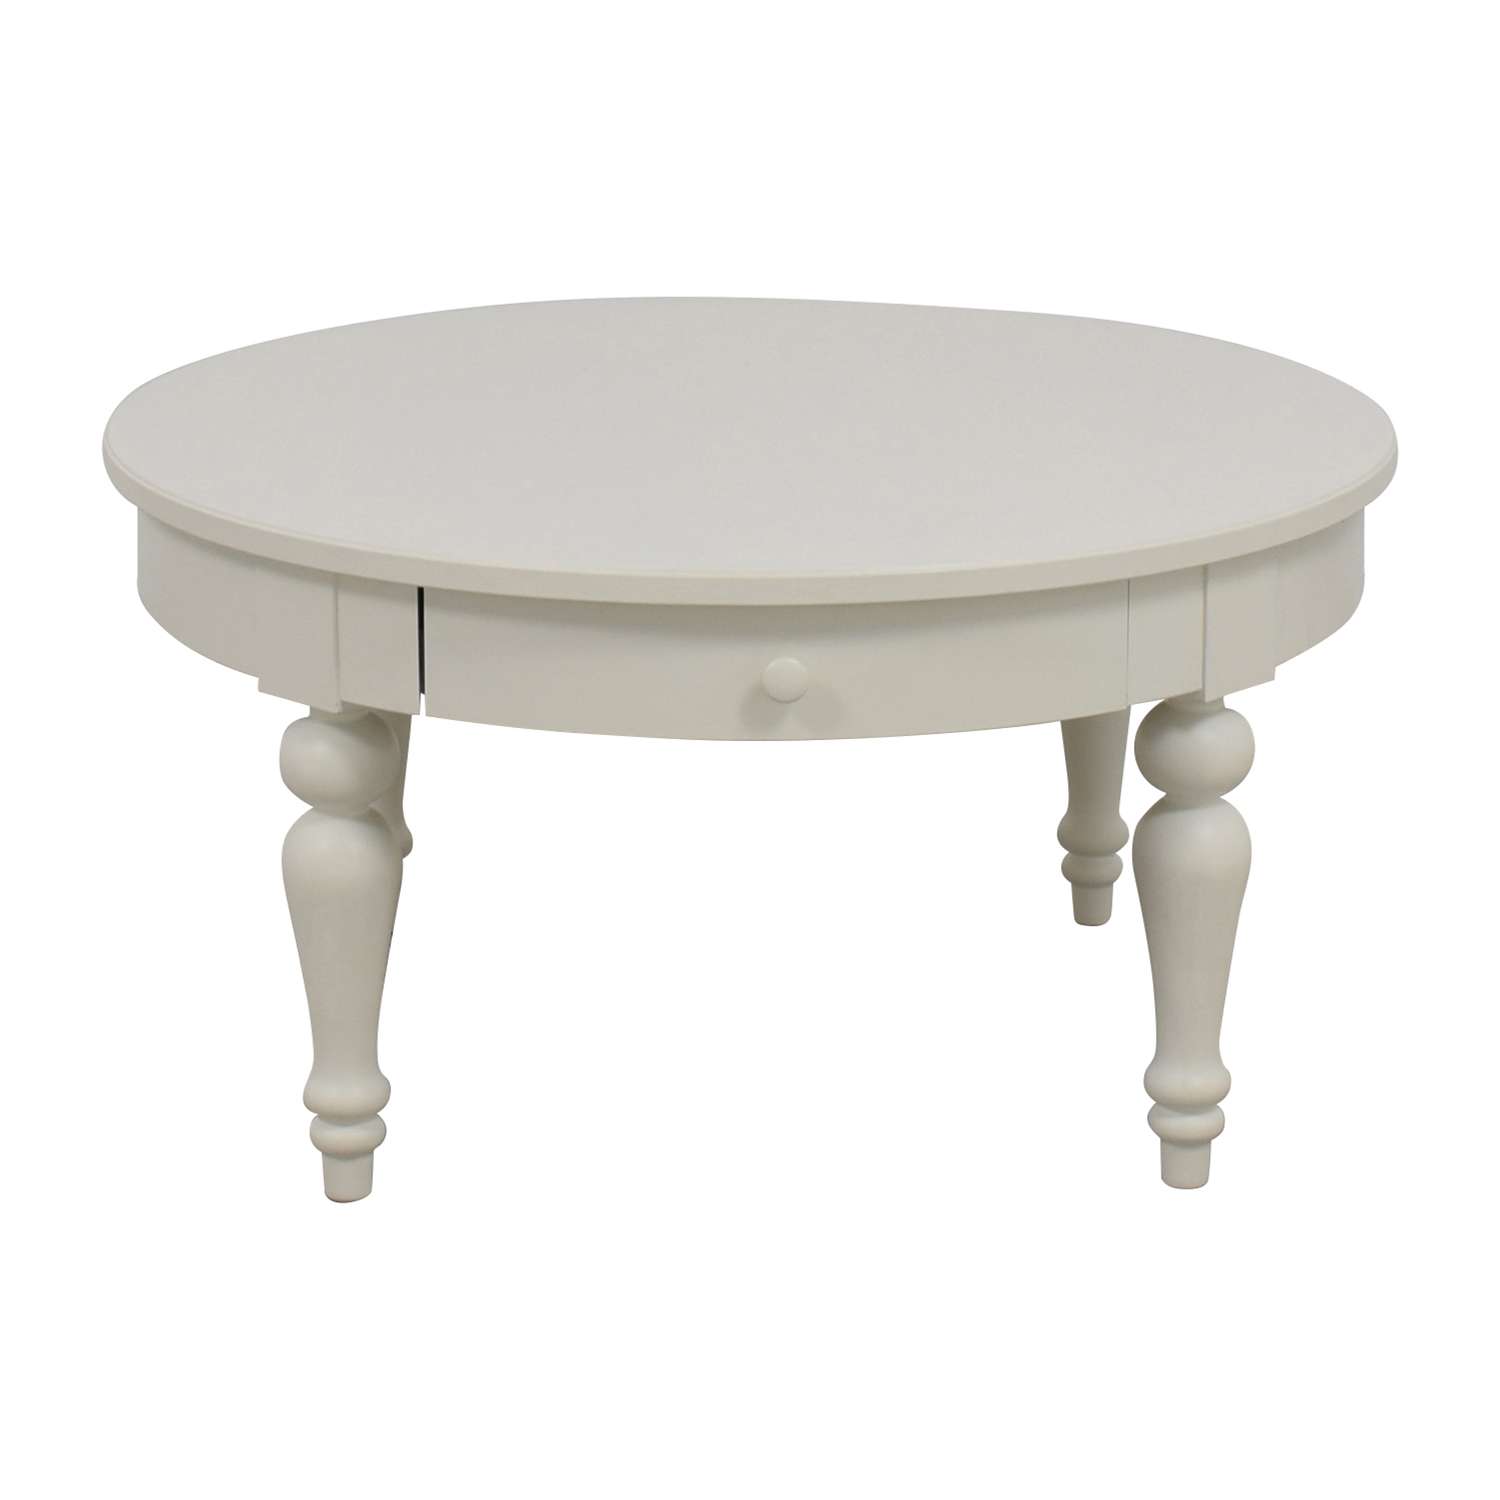 66% OFF IKEA IKEA White Round Coffee Table Tables